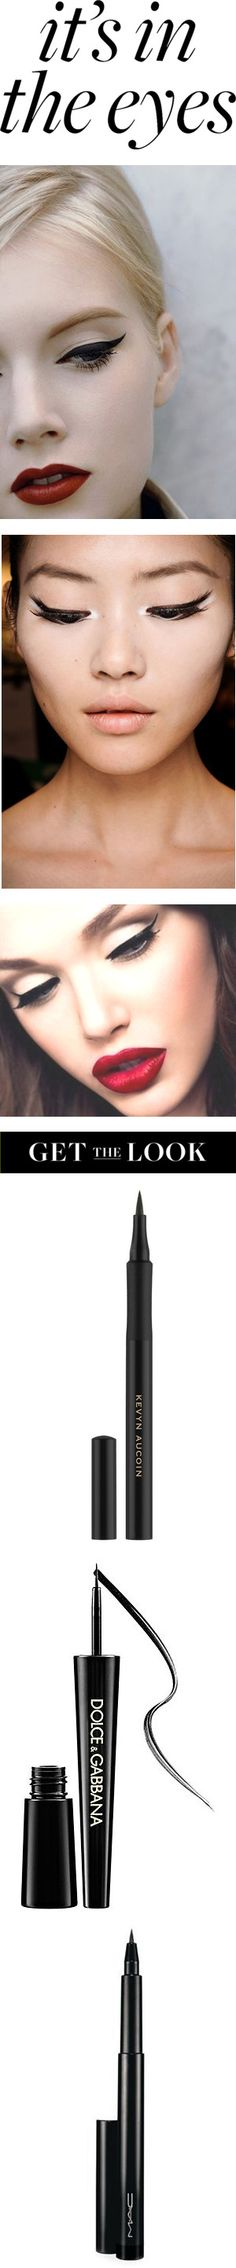 """""""Get The Look: The Wing"""" by nadia on Polyvore"""